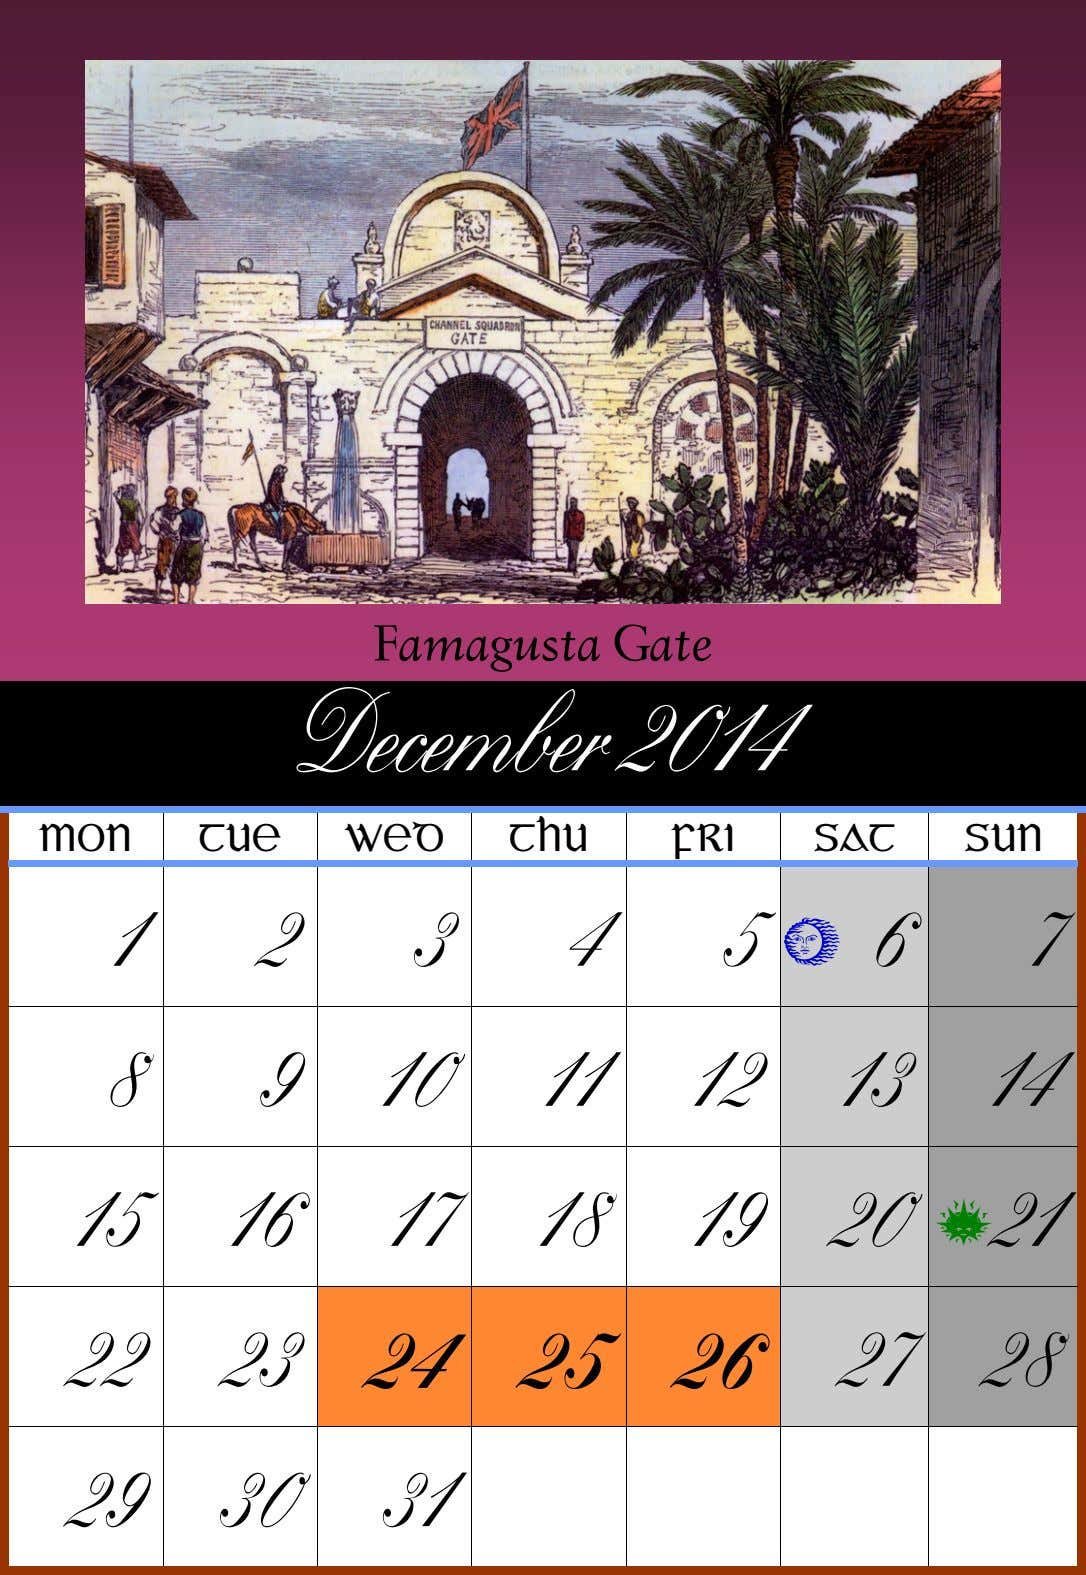 Famagusta Gate December 2014 MON TUE WED THU FRI SAT SUN 1 2 3 4